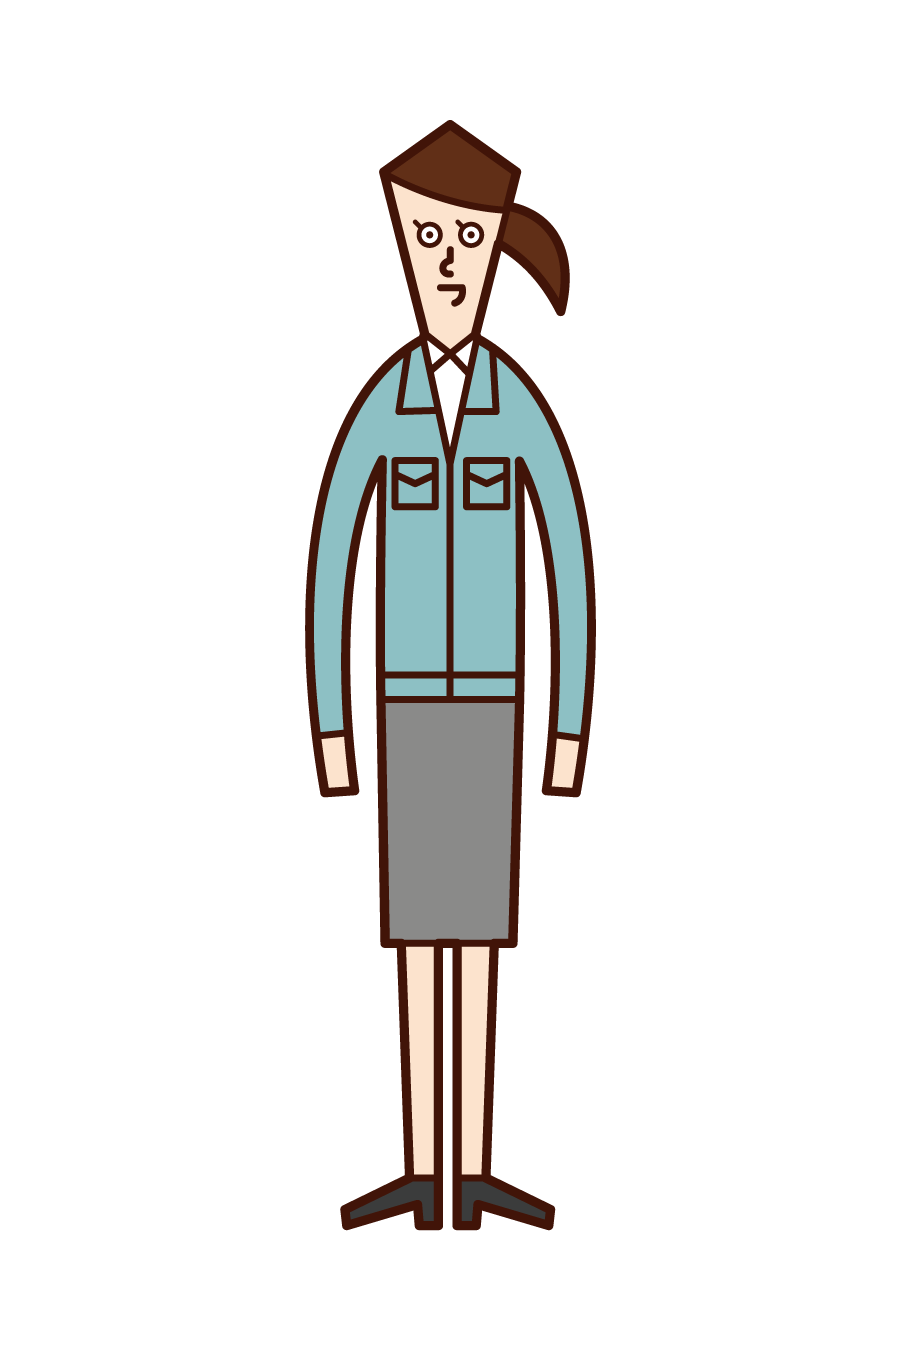 Illustration of a person wearing a work clothes and a civil servant (woman)